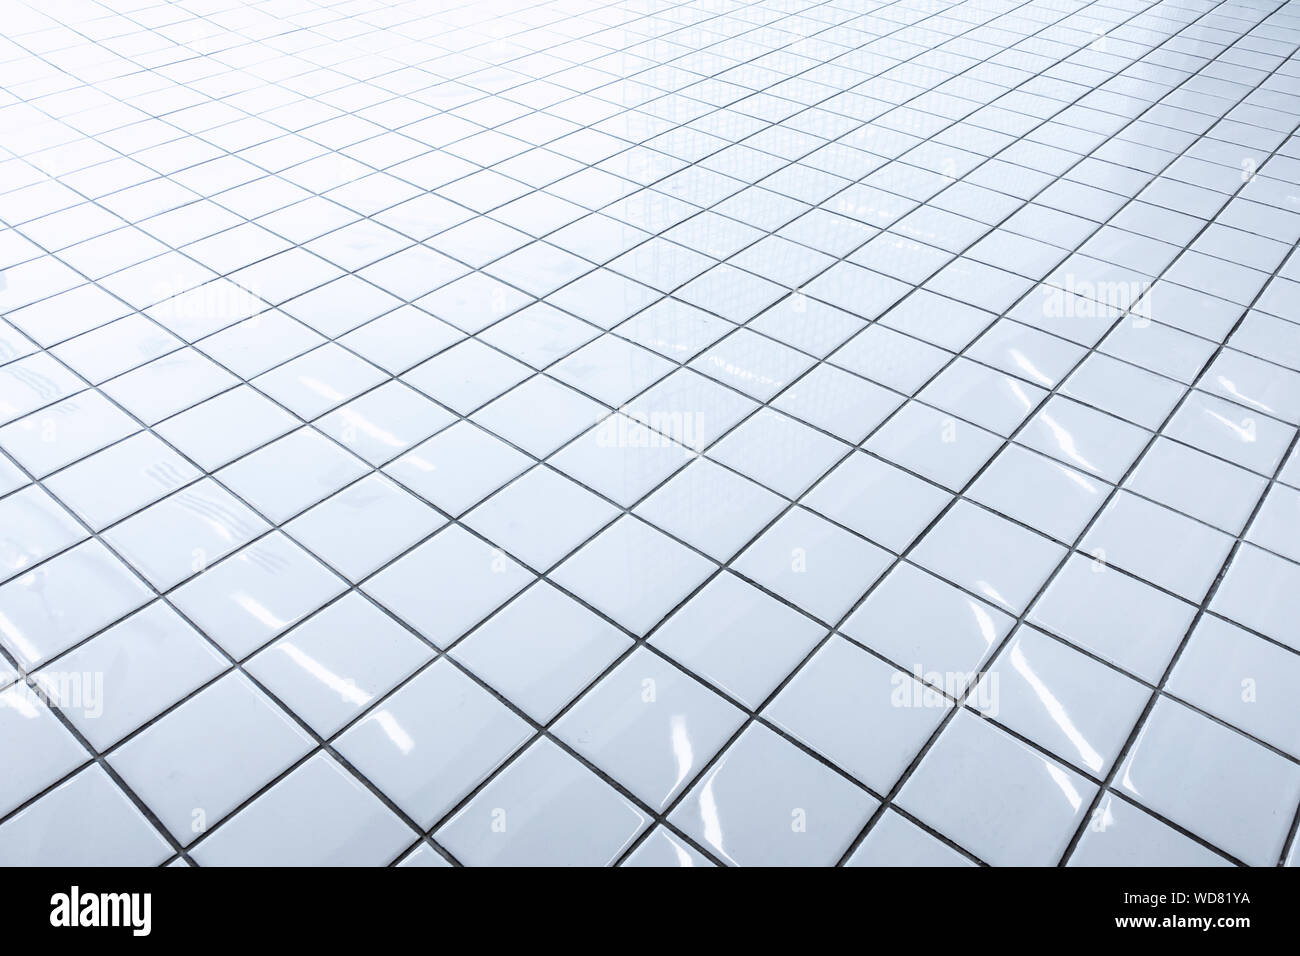 https www alamyimages fr abstract background texture de revetement carrelage aux sols l architecture decoration d interieur de carreaux de sol en carrelage perspective architecturale squa image266323214 html